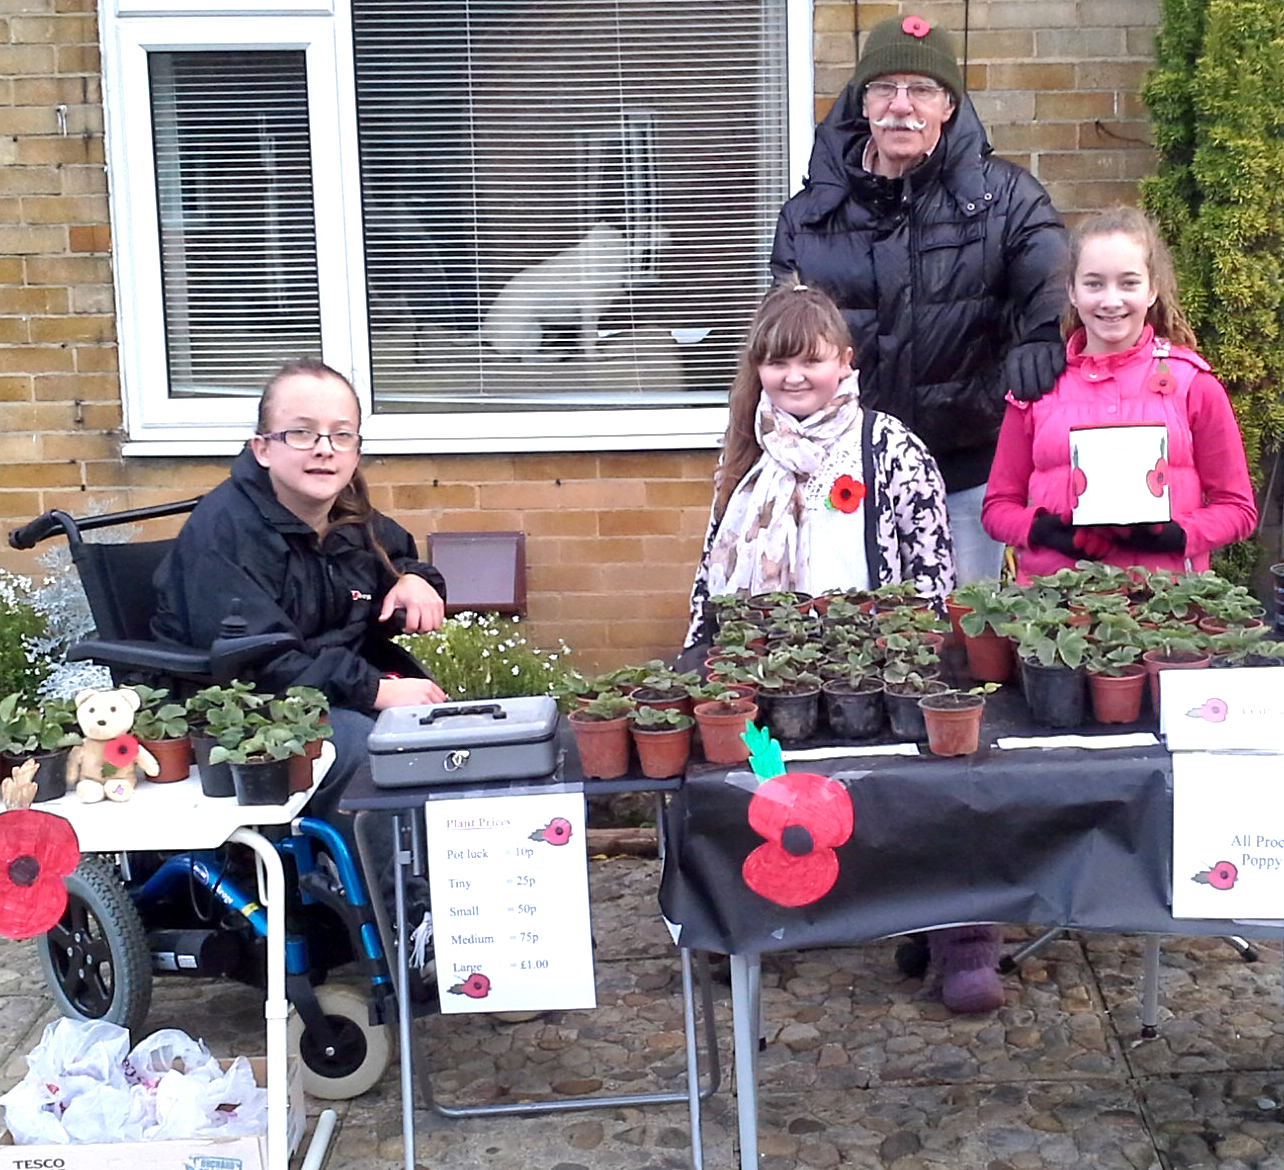 Strawberry Plant Sale for Poppy Appeal